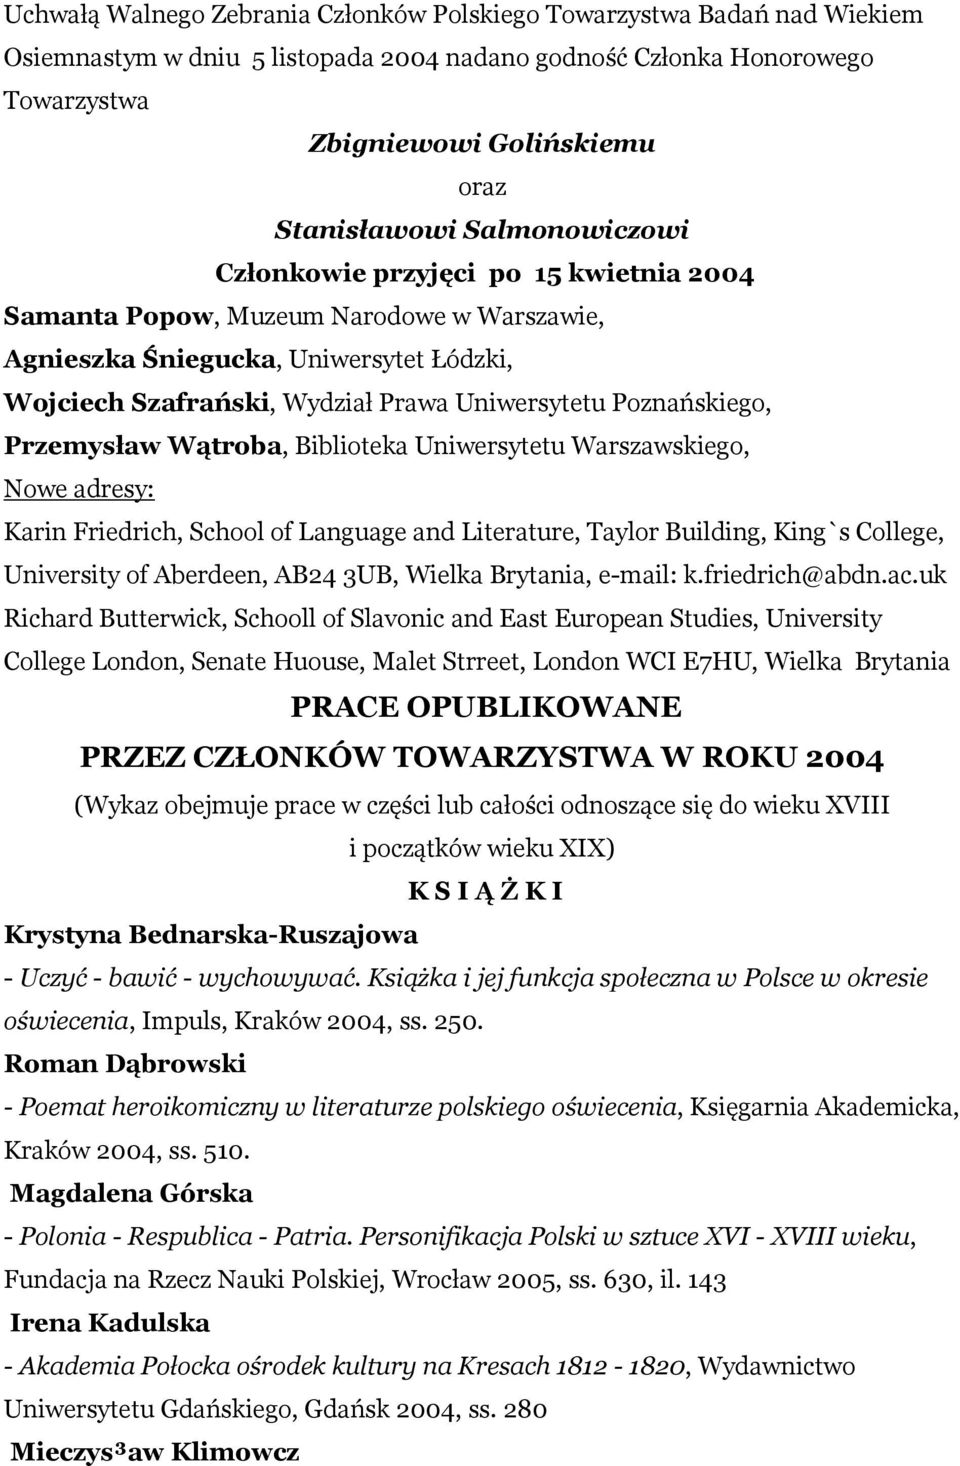 Poznańskiego, Przemysław Wątroba, Biblioteka Uniwersytetu Warszawskiego, Nowe adresy: Karin Friedrich, School of Language and Literature, Taylor Building, King`s College, University of Aberdeen, AB24